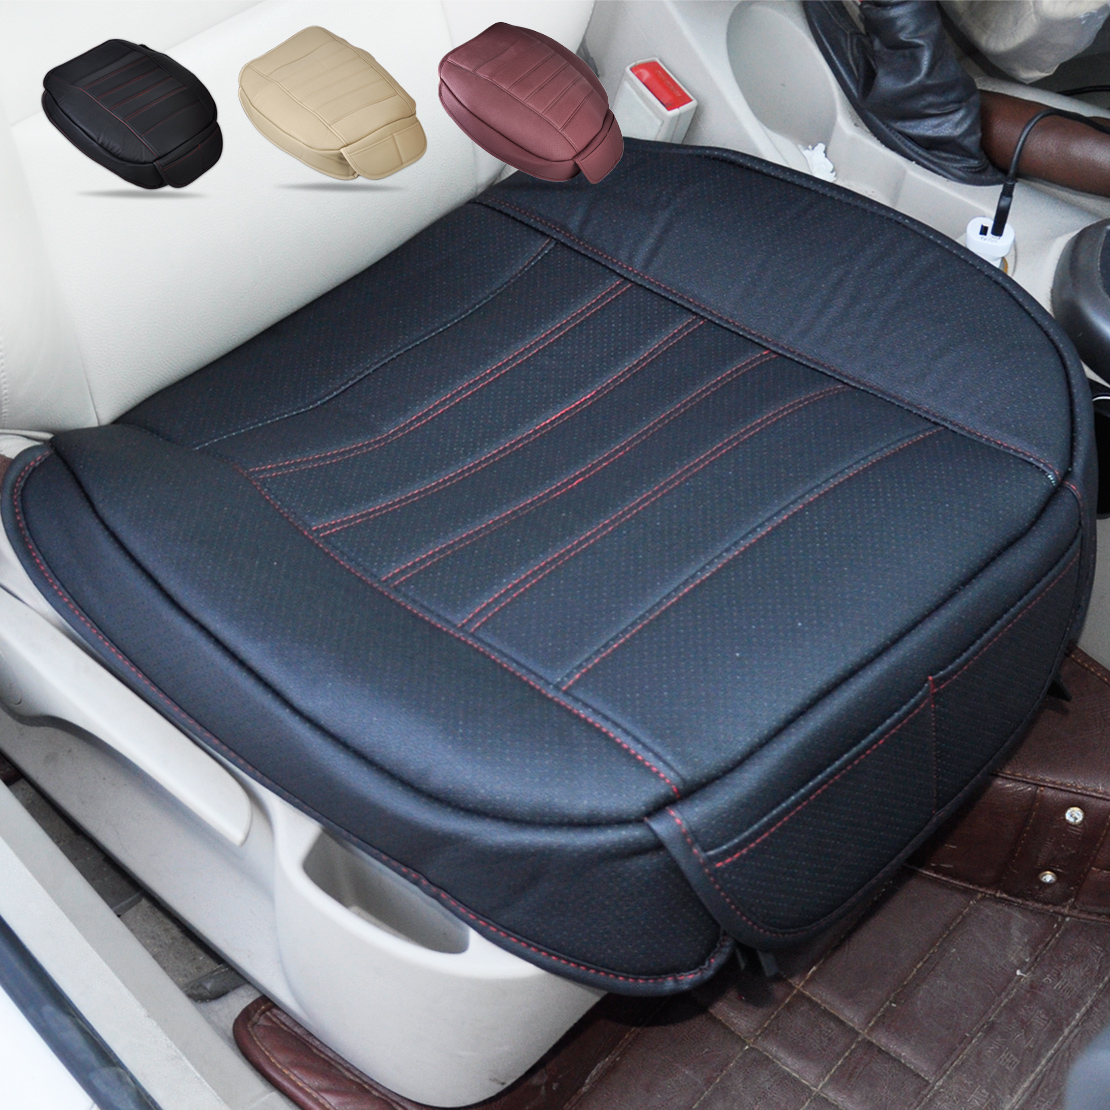 universal black car front seat cover breathable pu leather seat pad cushion 702706039154 ebay. Black Bedroom Furniture Sets. Home Design Ideas